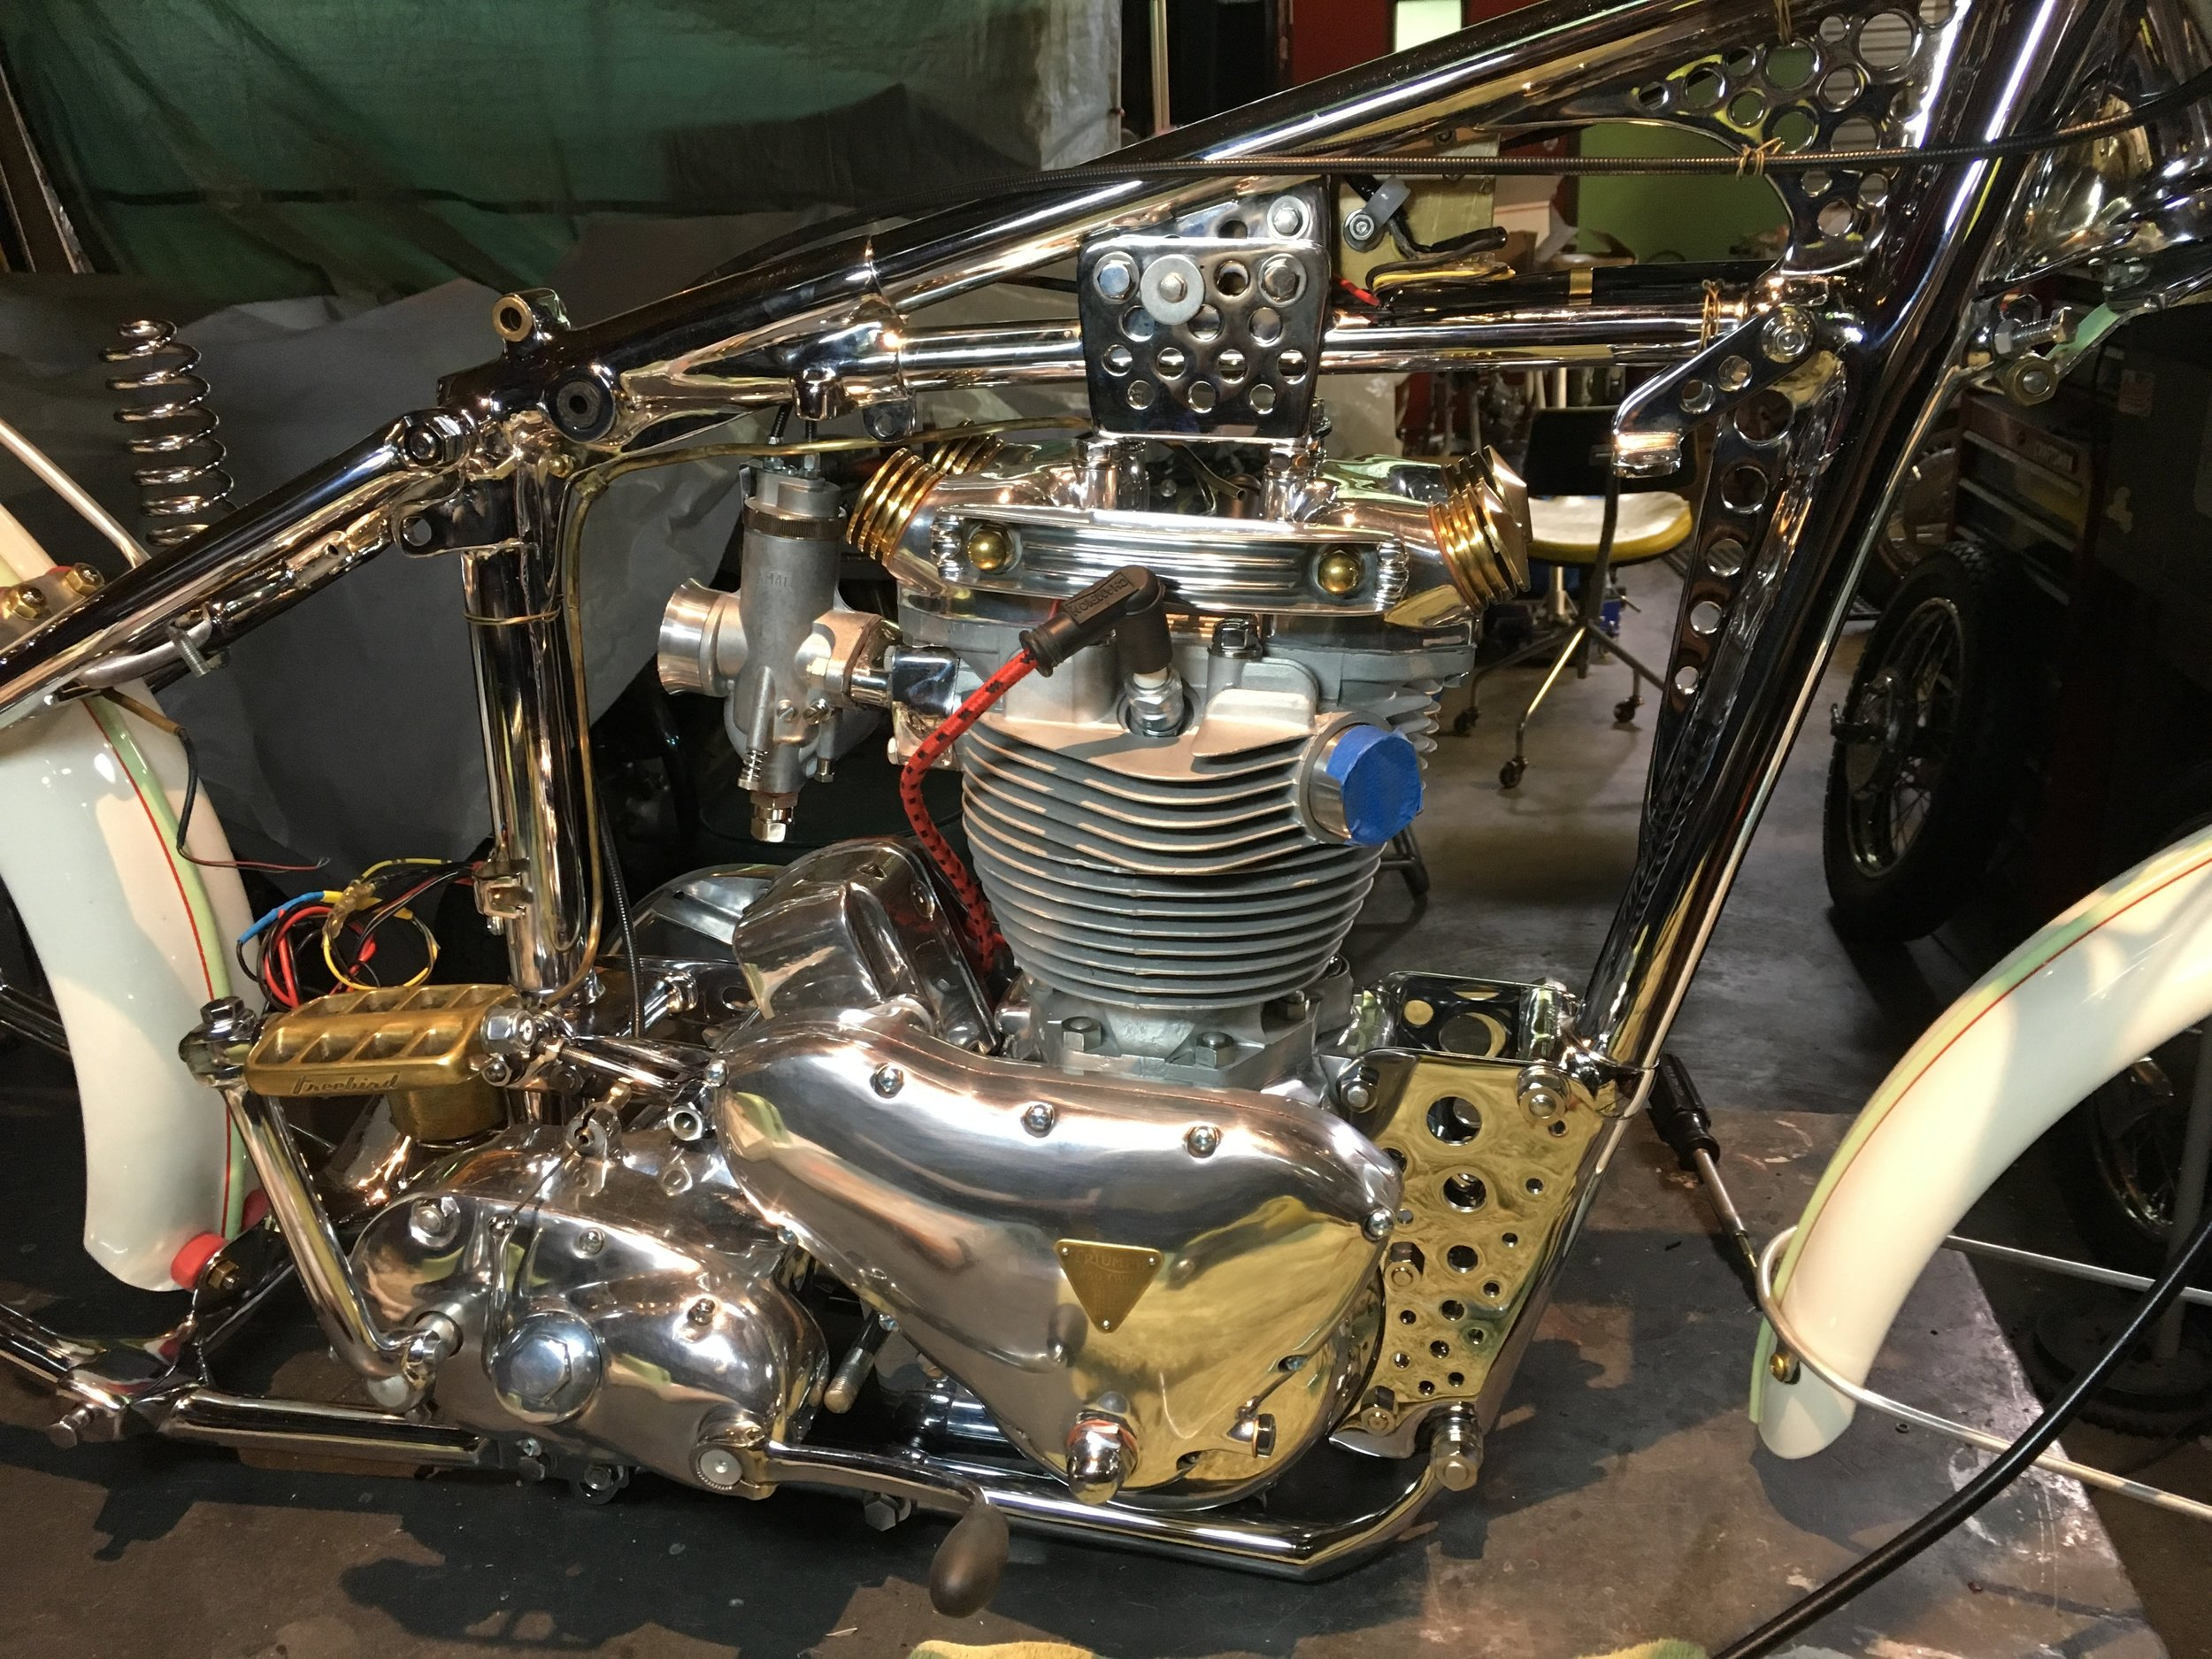 The Amal 389 carb will probably get a polish and an air filter may get made, but the engine is otherwise done. As soon as it is on the ground, the exhaust will be put on, and by all appearances it will be a complete bike.